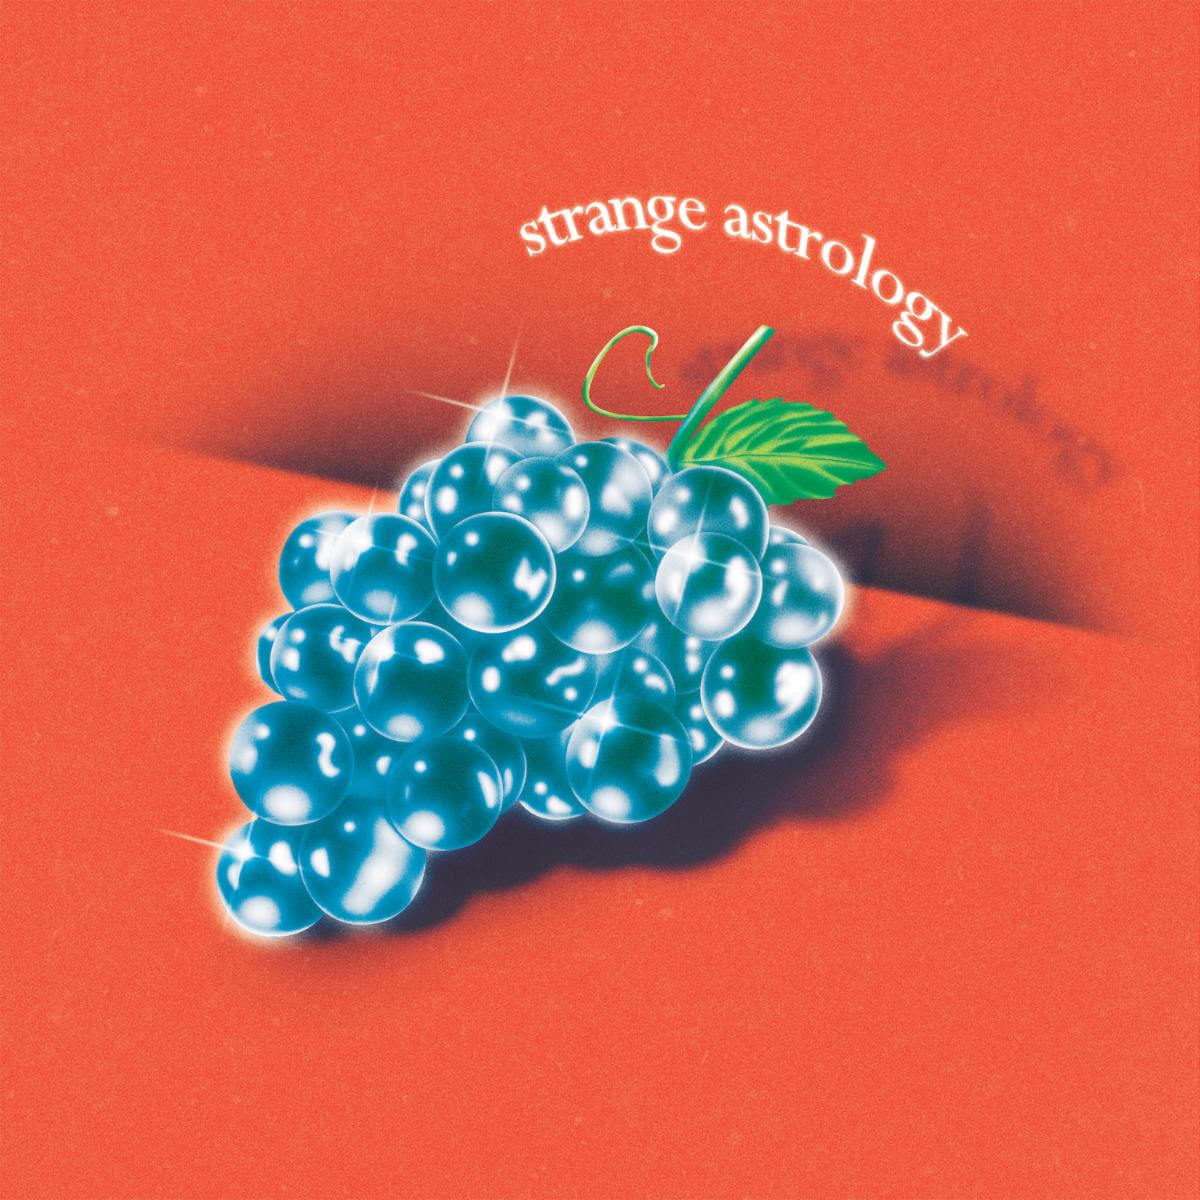 """""""Strange Astrology"""" by Slothrust is Northern Transmissions Song of the Day. The track is off their LP Parallel Timeline, out September 10th"""